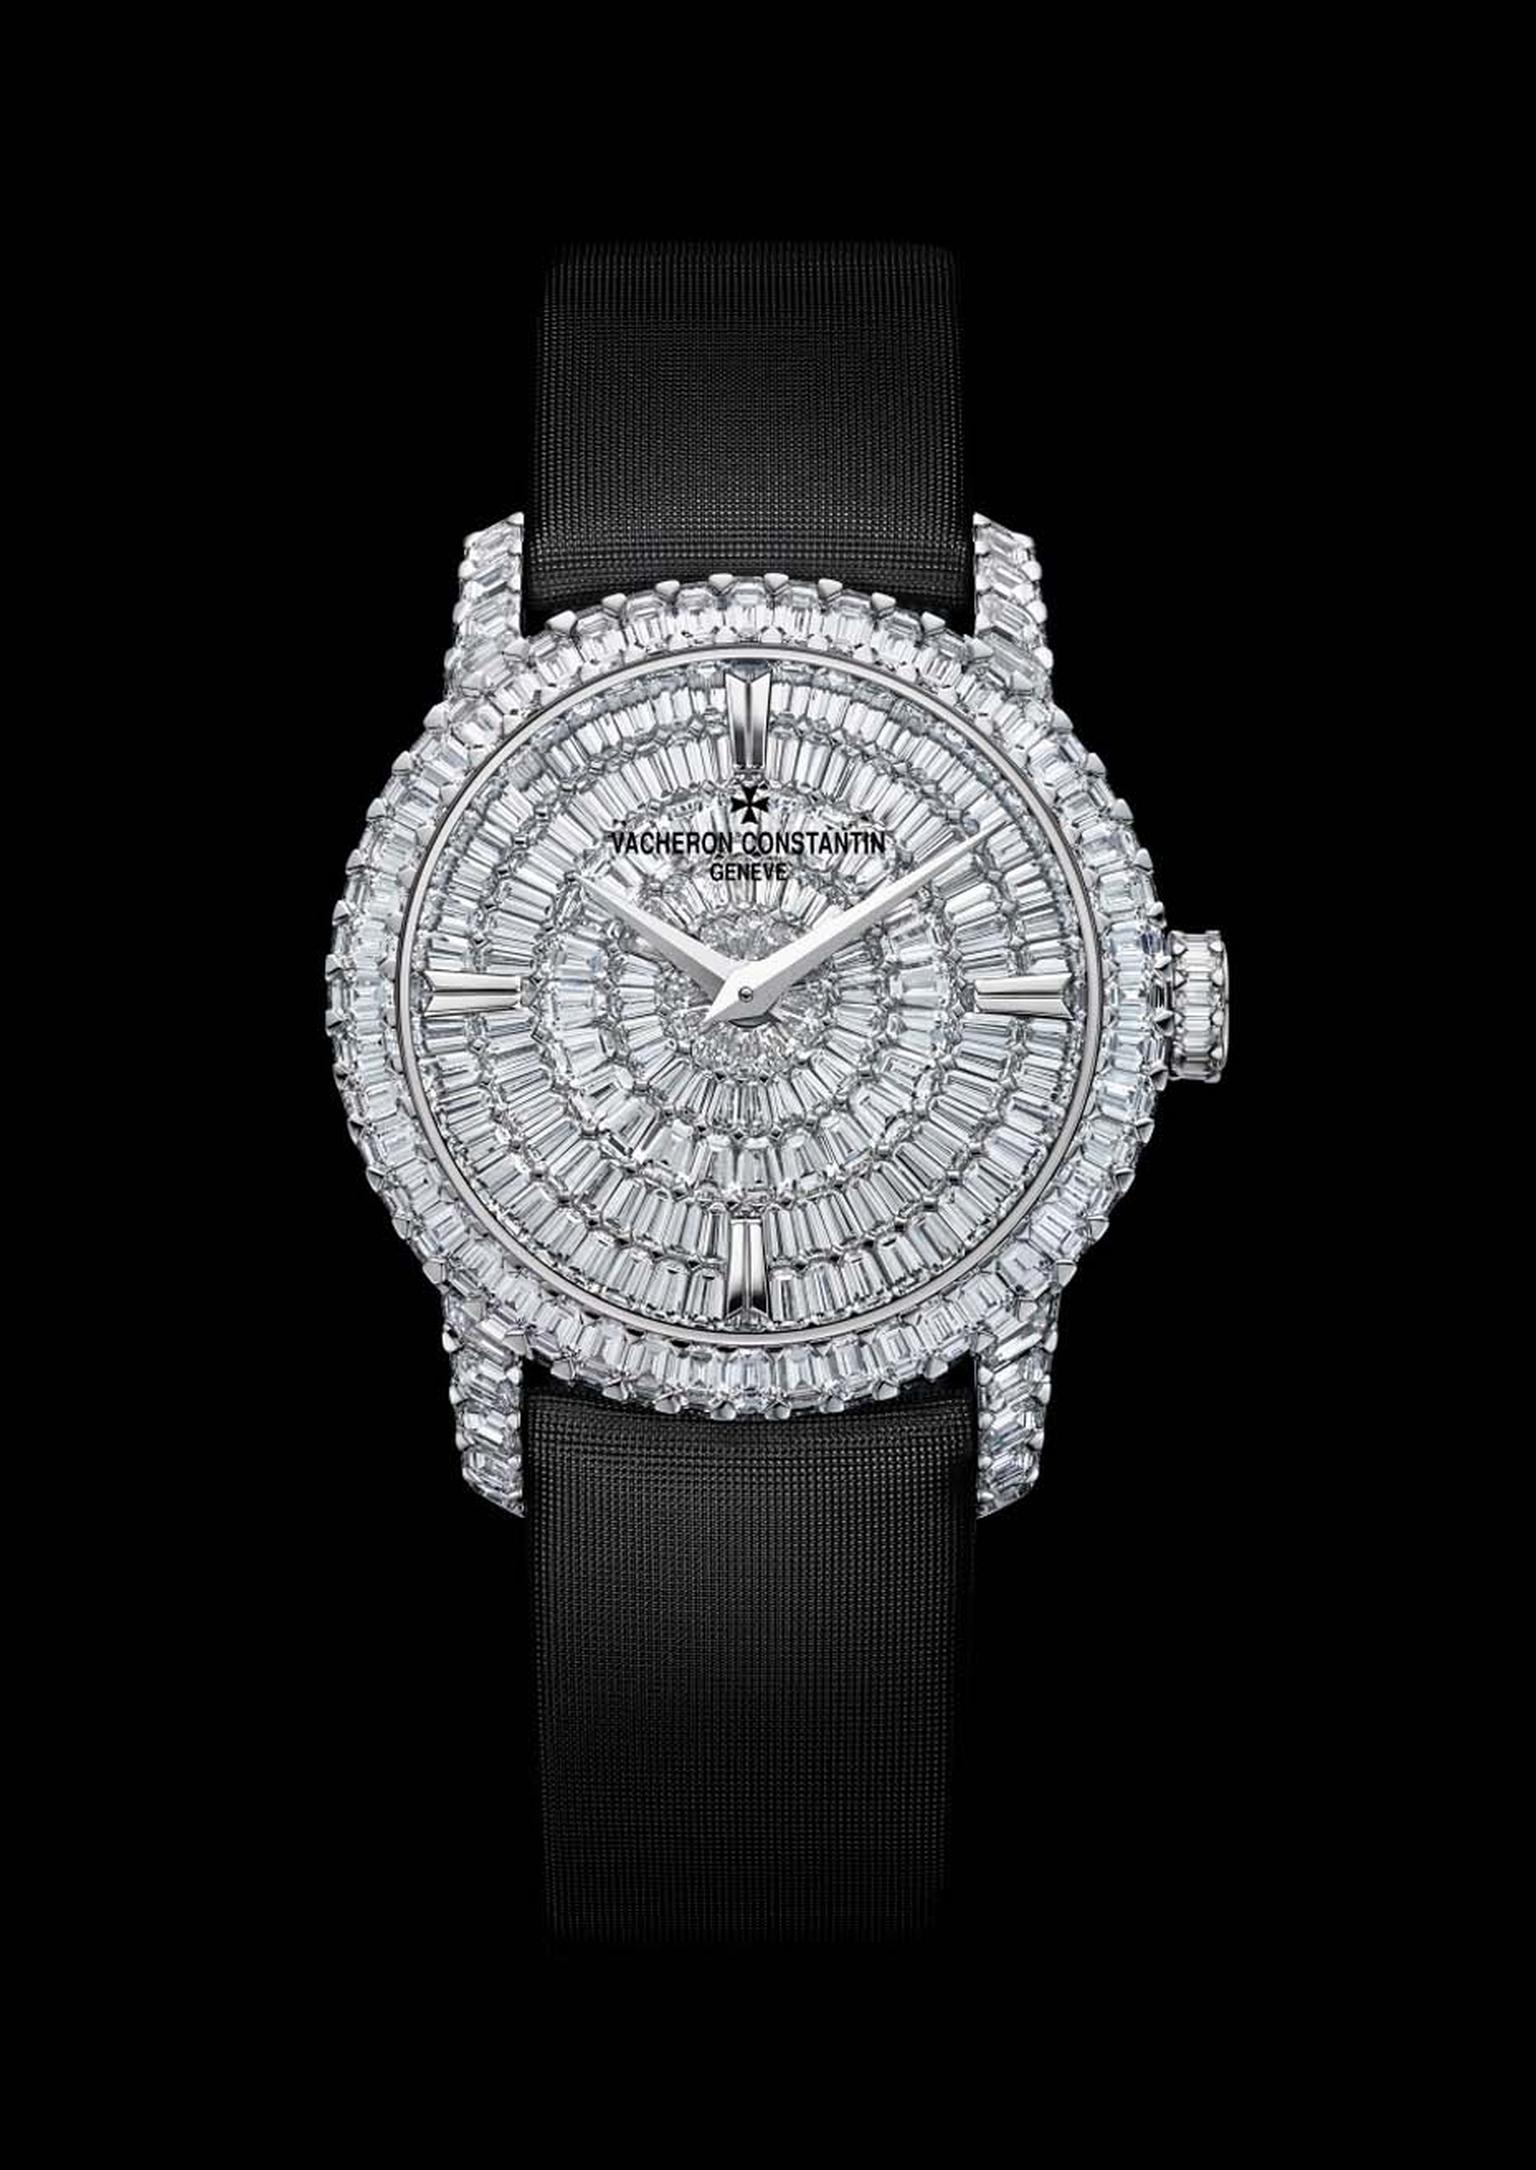 Vacheron Constantin's Patrimony Traditionnel high jewellery small model is set with prong-set baguette-cut diamonds totaling 10.60ct.